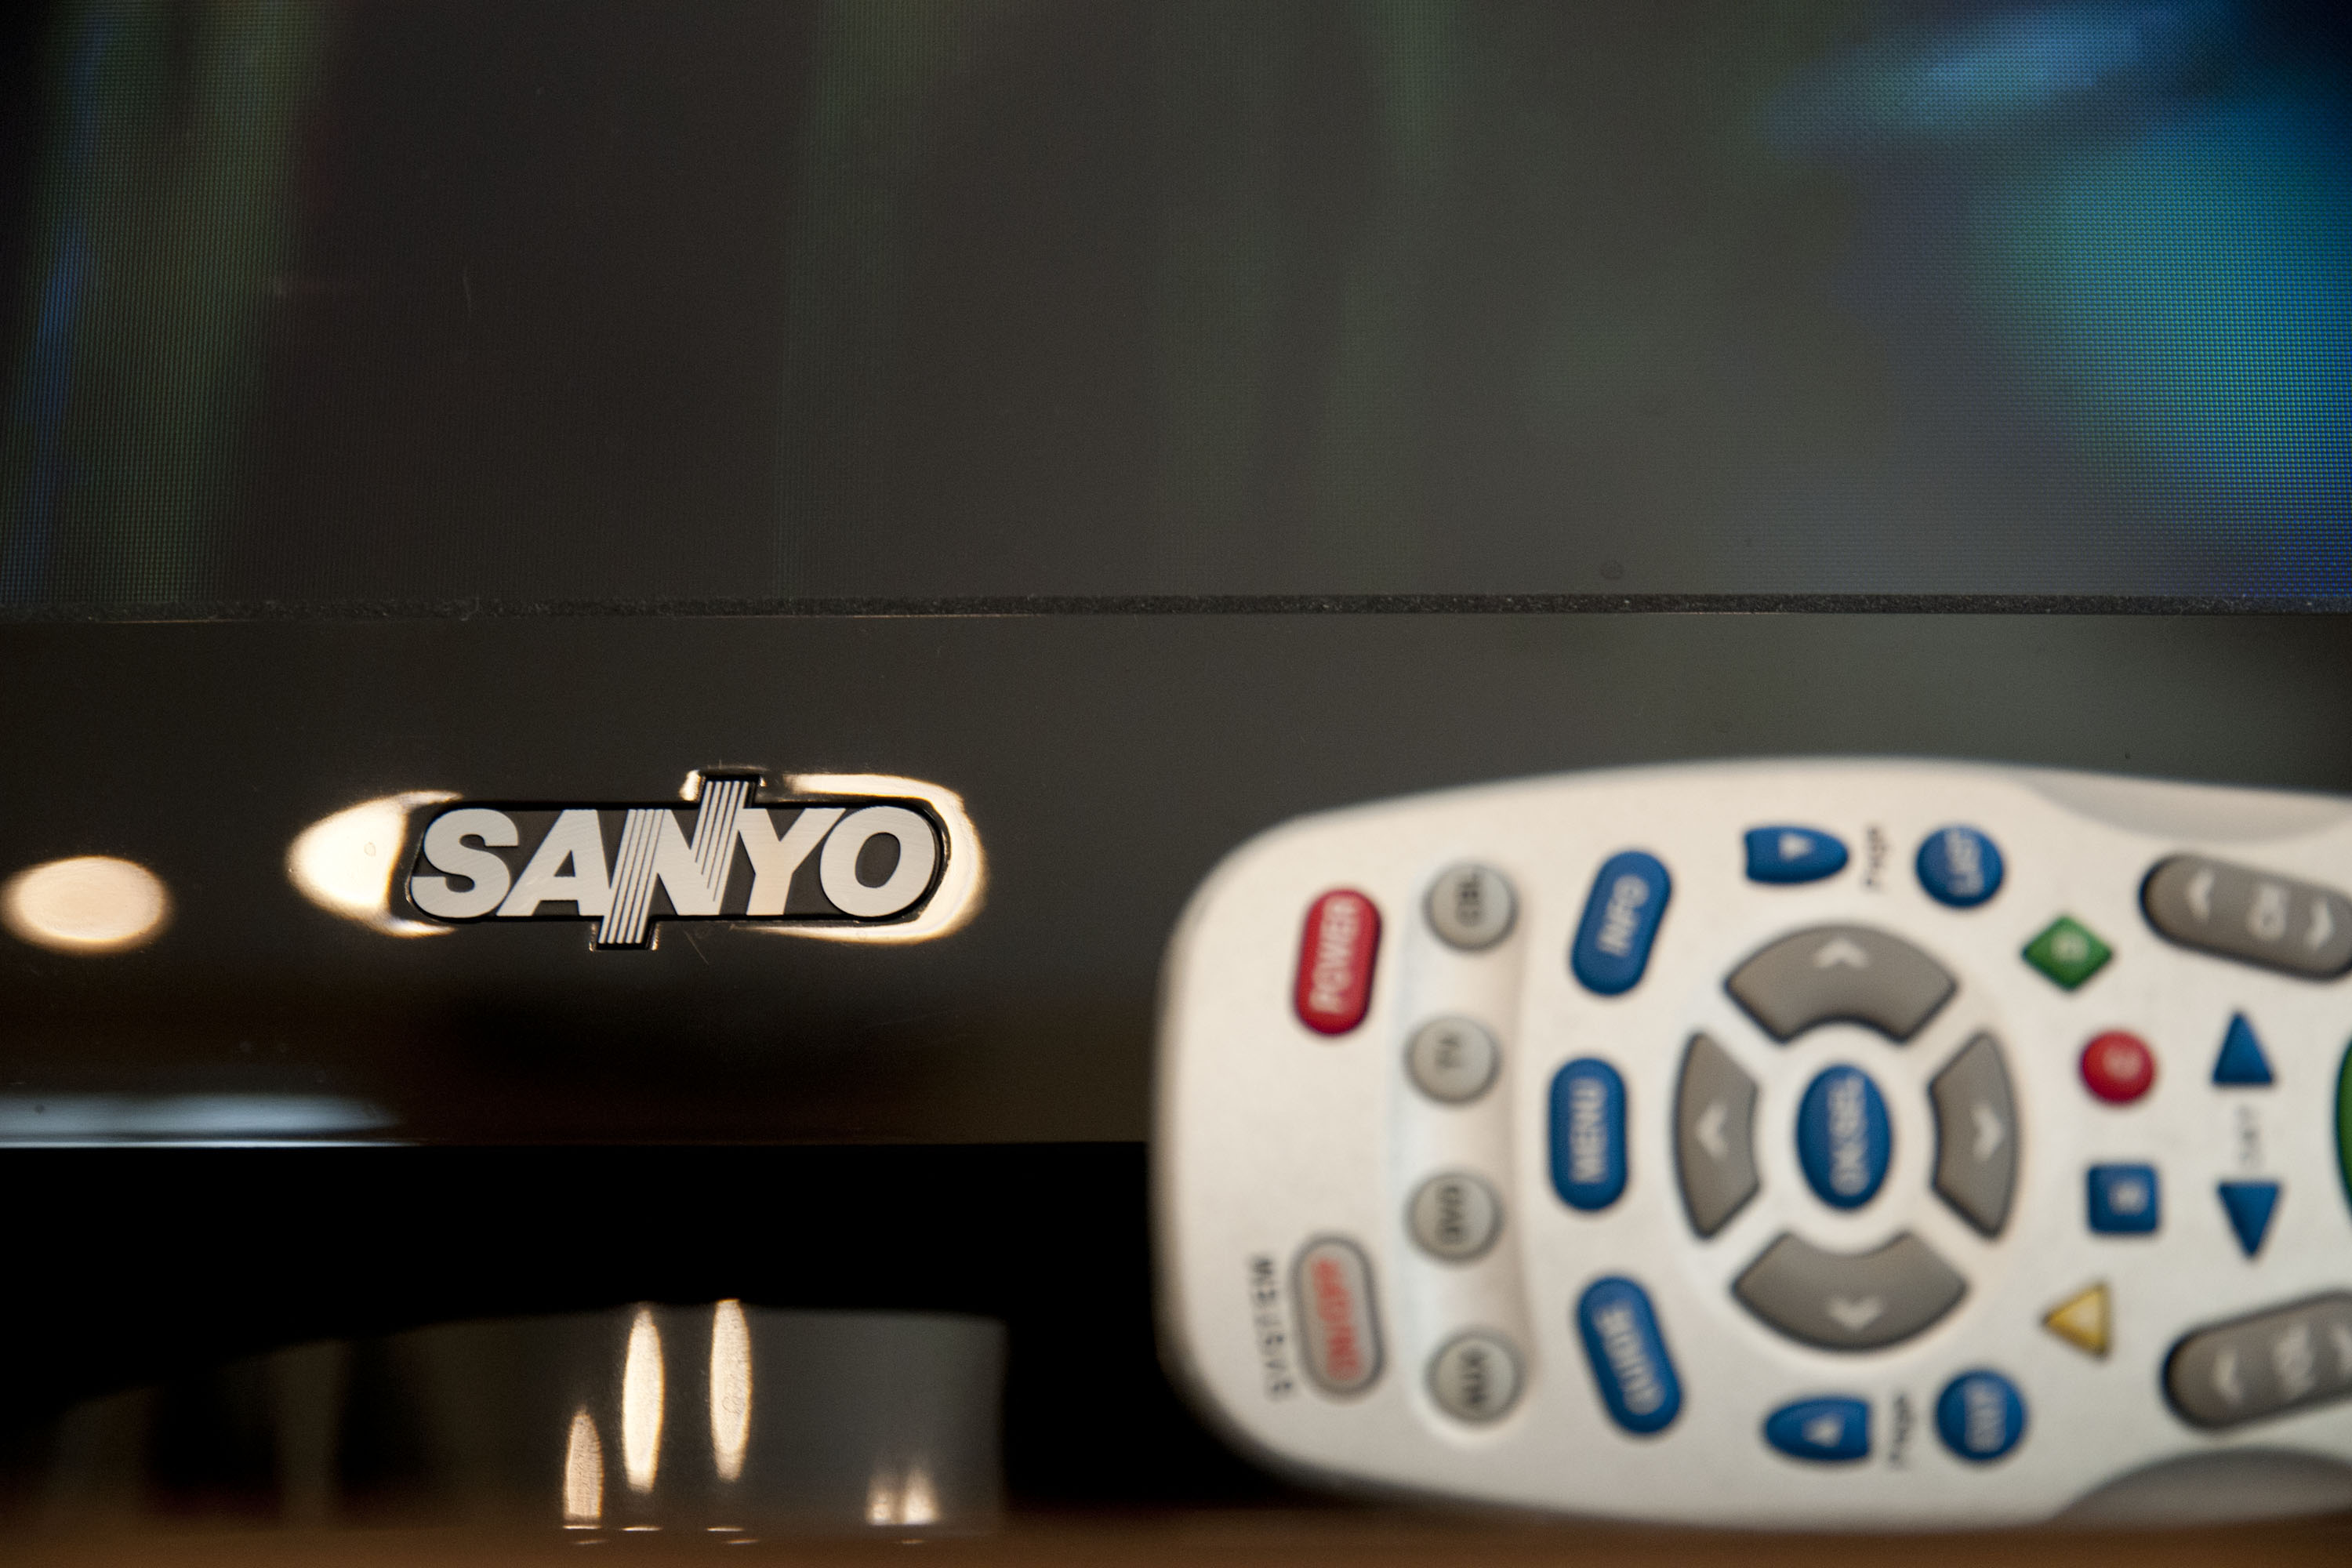 How to Program a Universal Remote to My TV | It Still Works